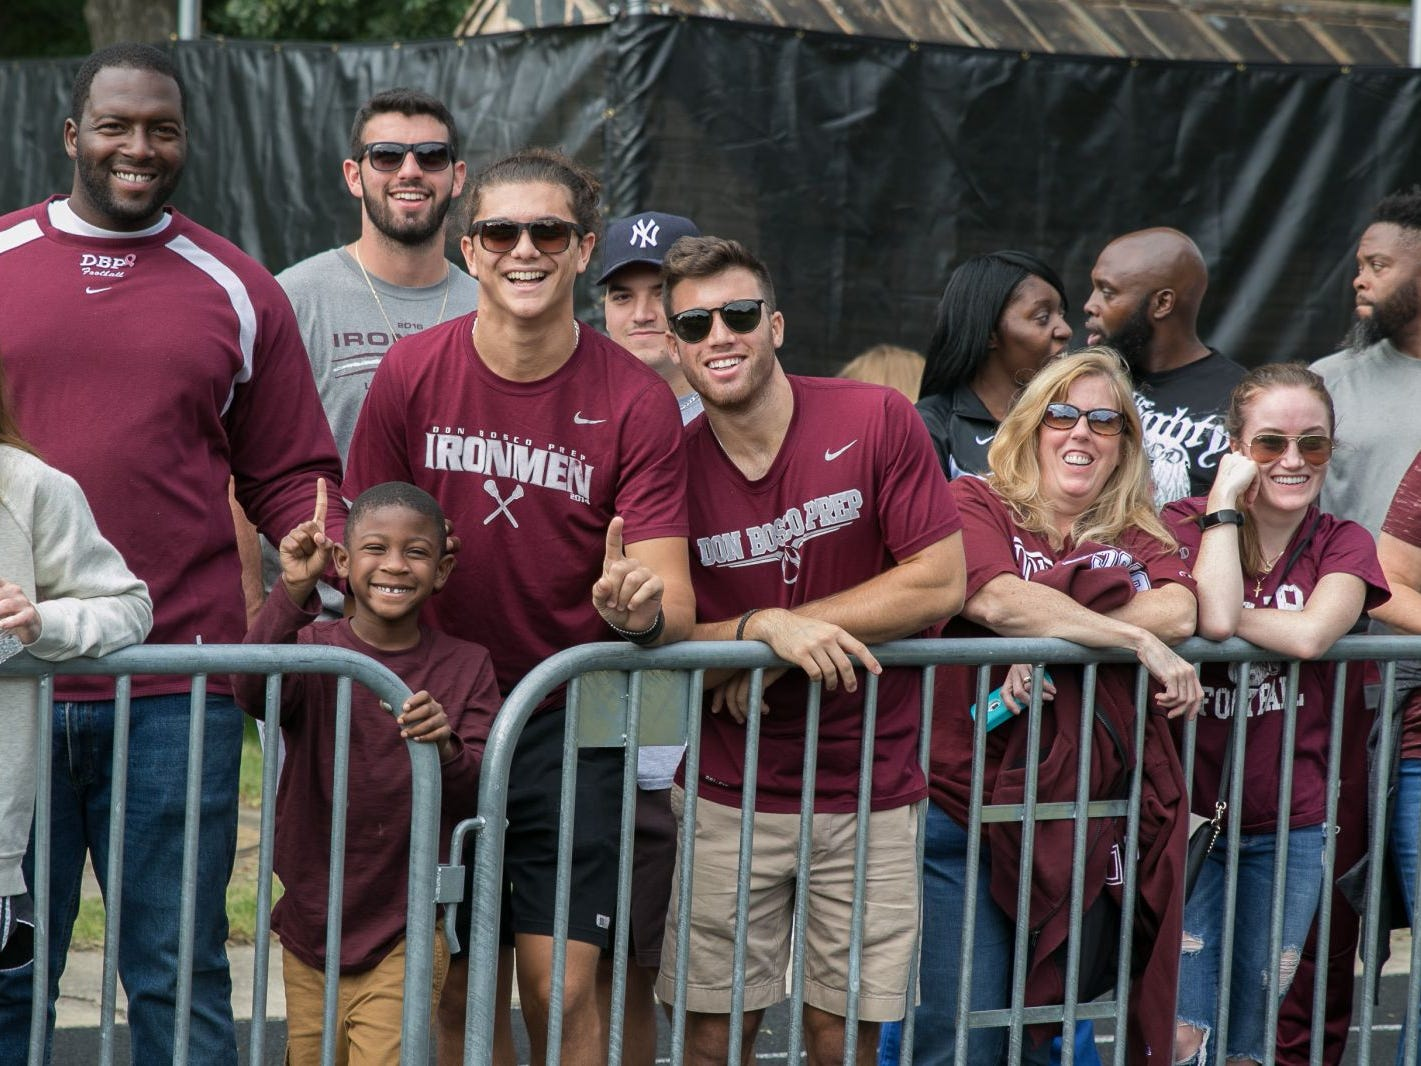 Fans at the Don Bosco versus Bergen Catholic 2018 rivalry football game. 09/22/2018